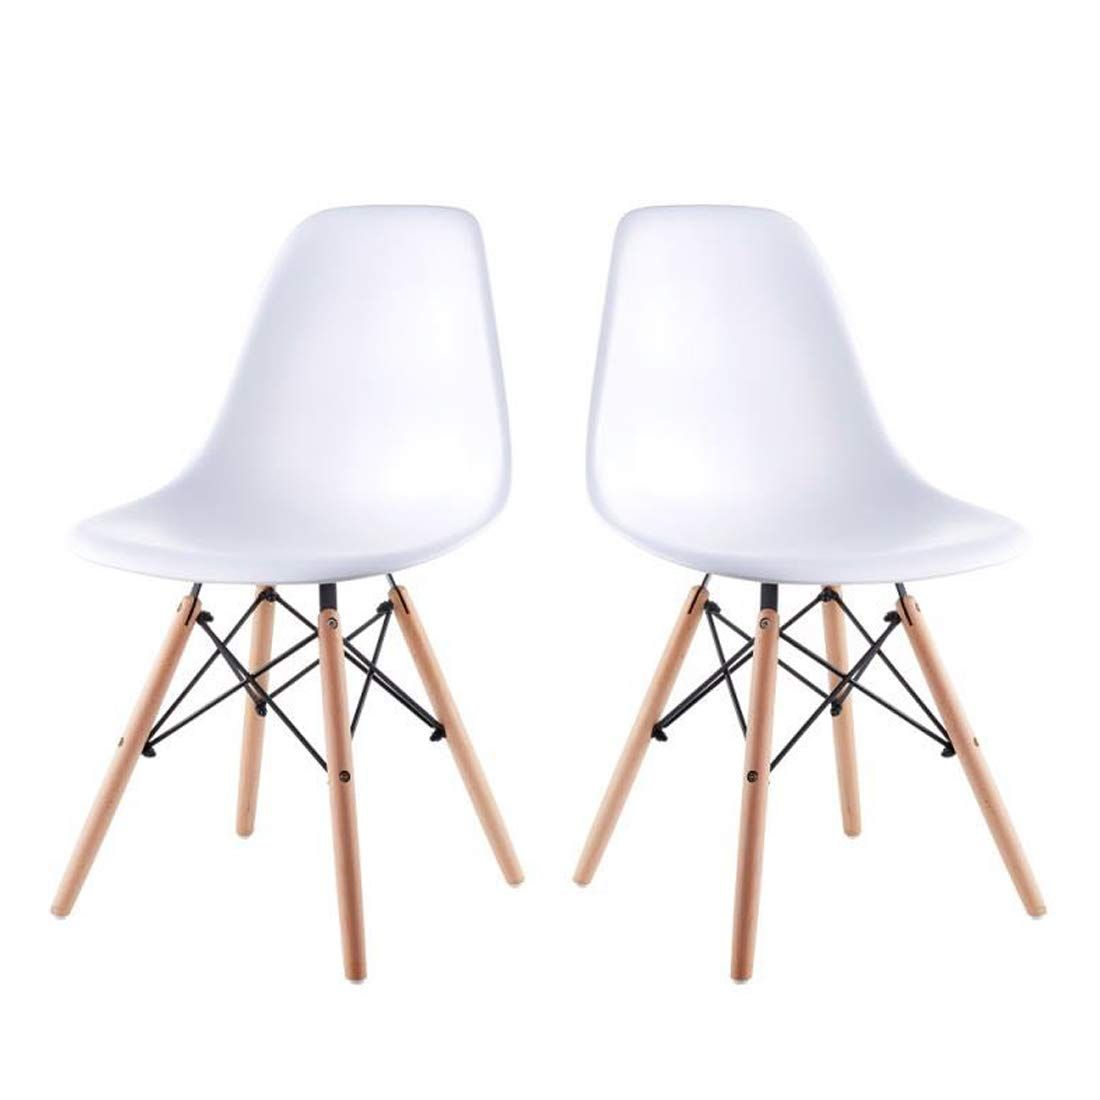 Artwell Eames Chairs Set Of 2 Mid Century Modern White Dining Chair Side Chair Plastic Armless Chair With White Dining Chairs Dining Chairs Living Dining Room